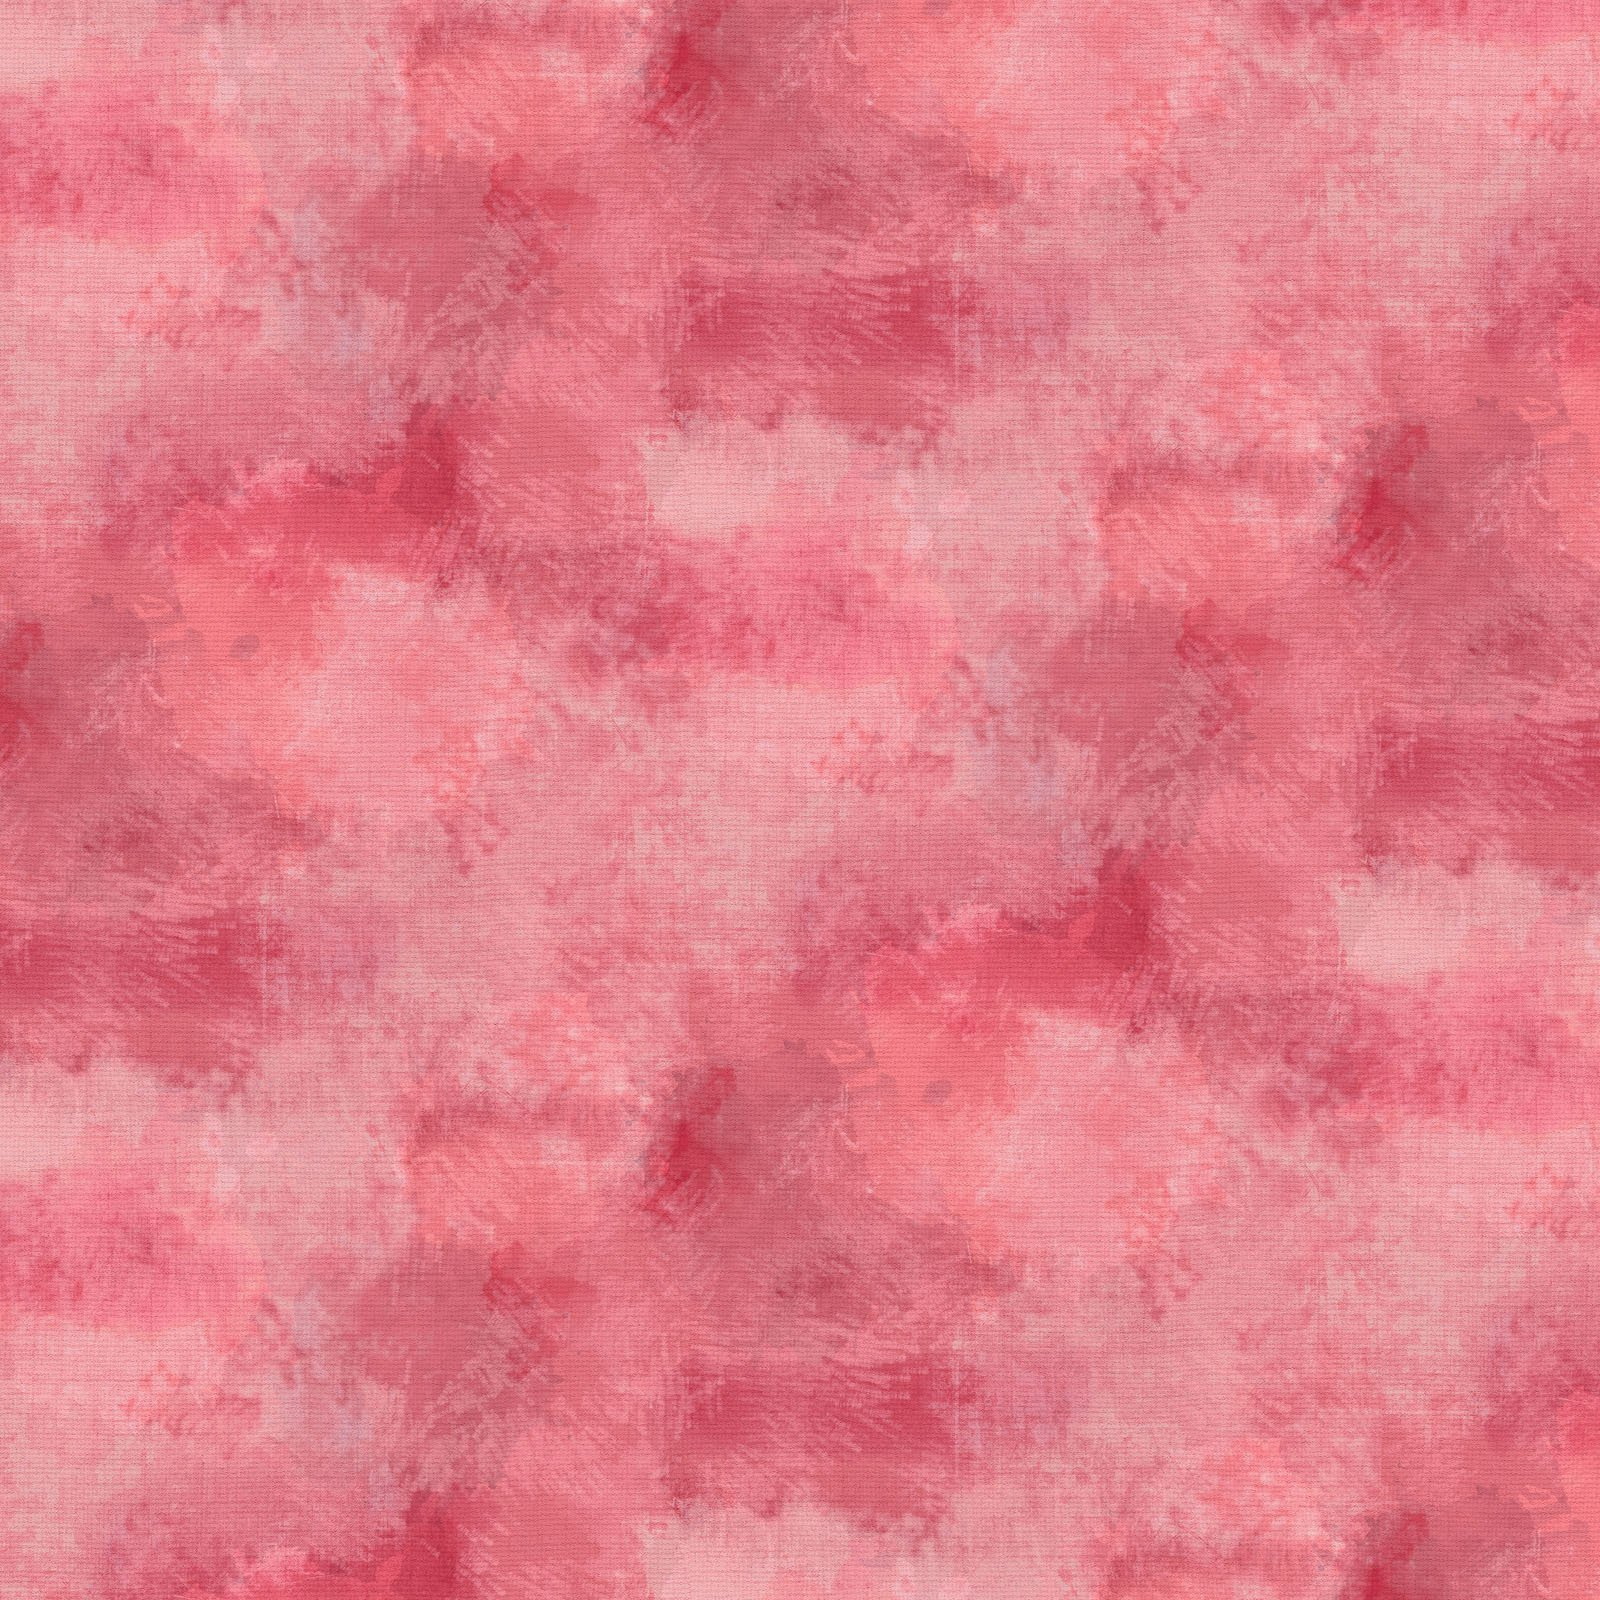 DANI-4509 P - DANIELLA BY P&B BOUTIQUE TEXTURE PINK - ARRIVING IN OCTOBER 2021